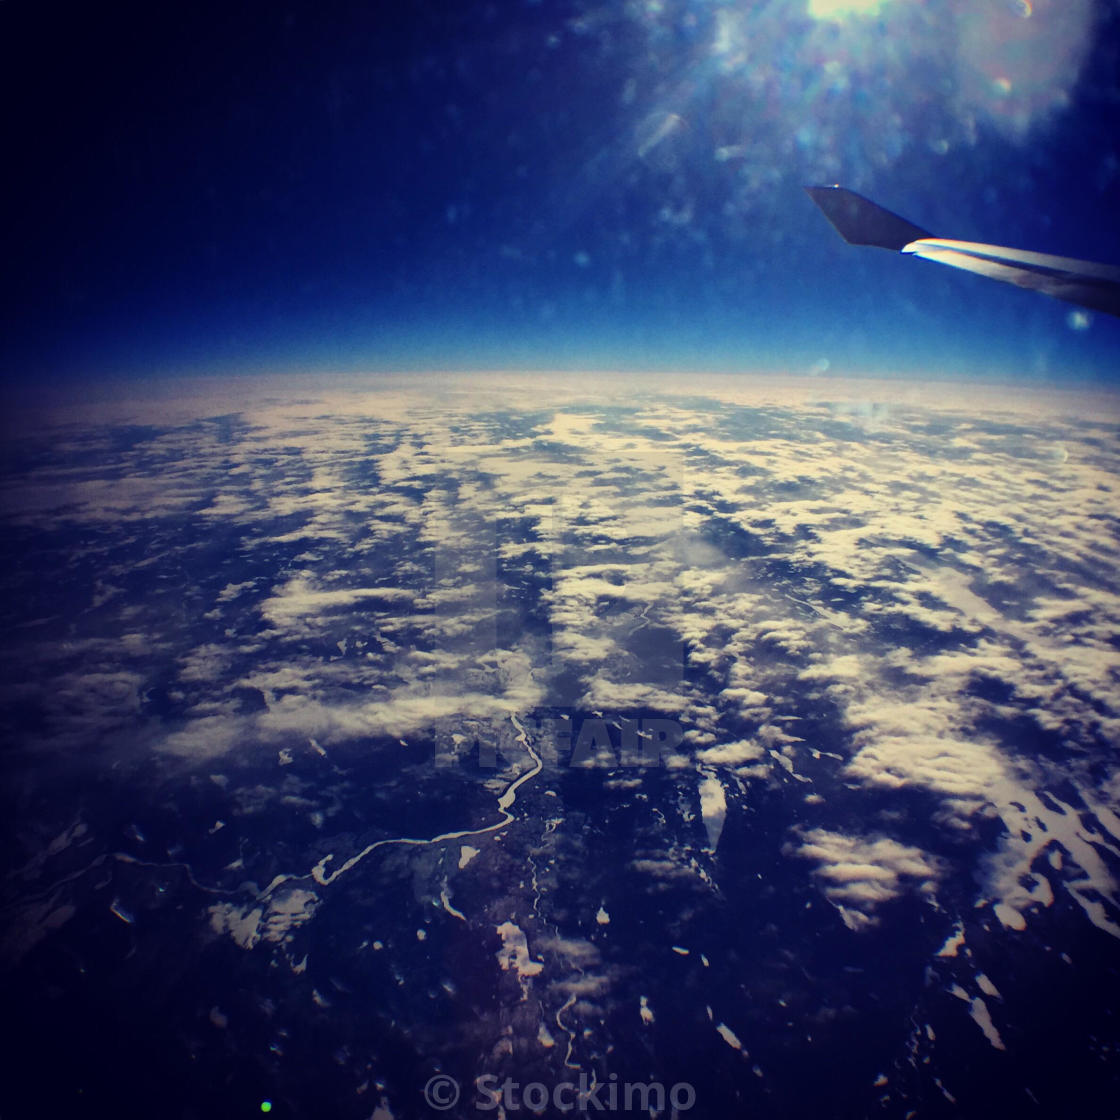 Looking out at the curvature of the earth - License, download or